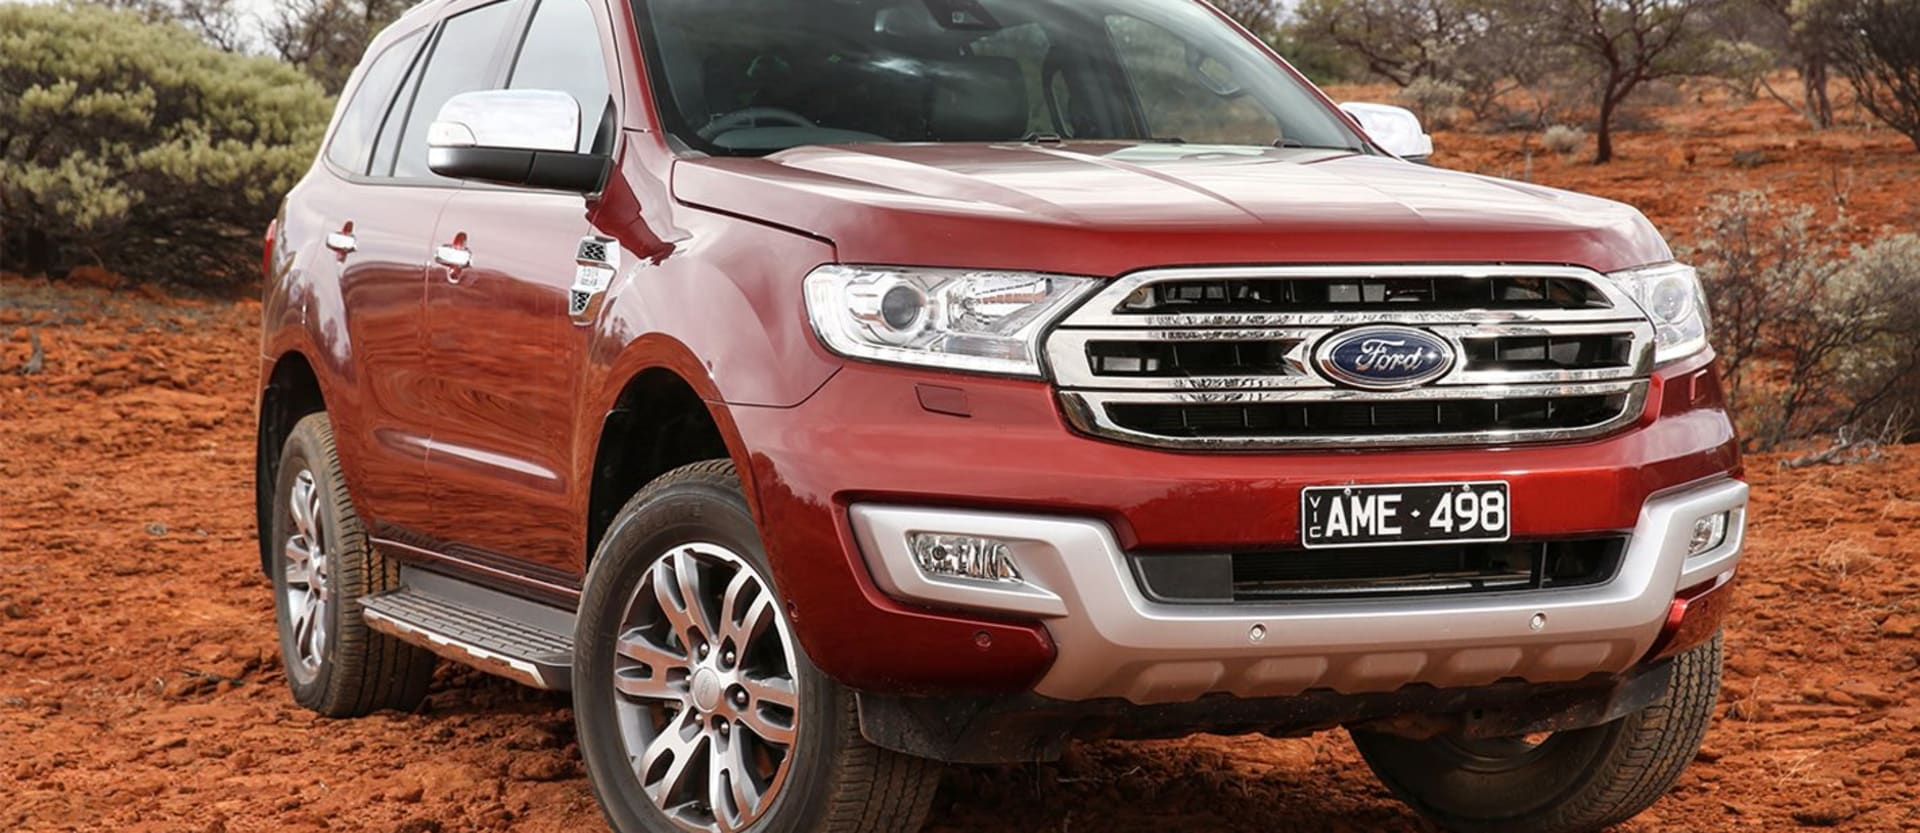 2018 Ford Everest Titainium gains no-cost off-road package option